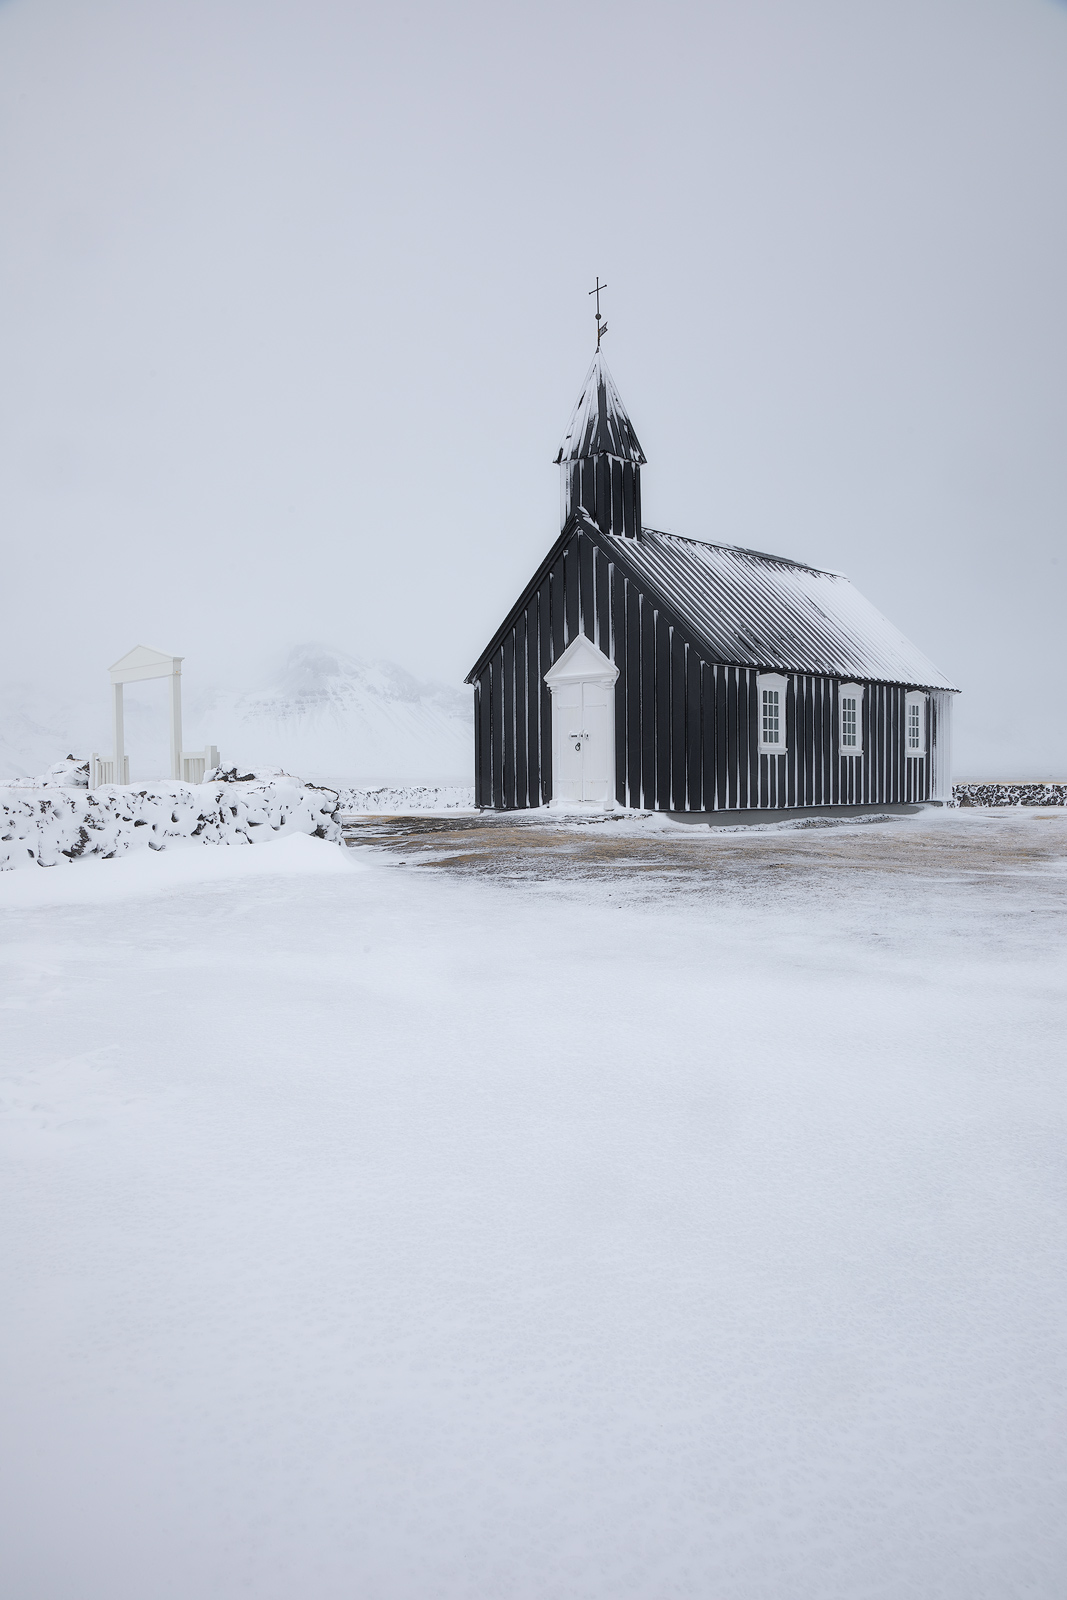 black, black church, building, church, europe, ice, iceland, snow, snowy, snæfellsnes, vertical, western, white, winter, Búðakirkja, photo